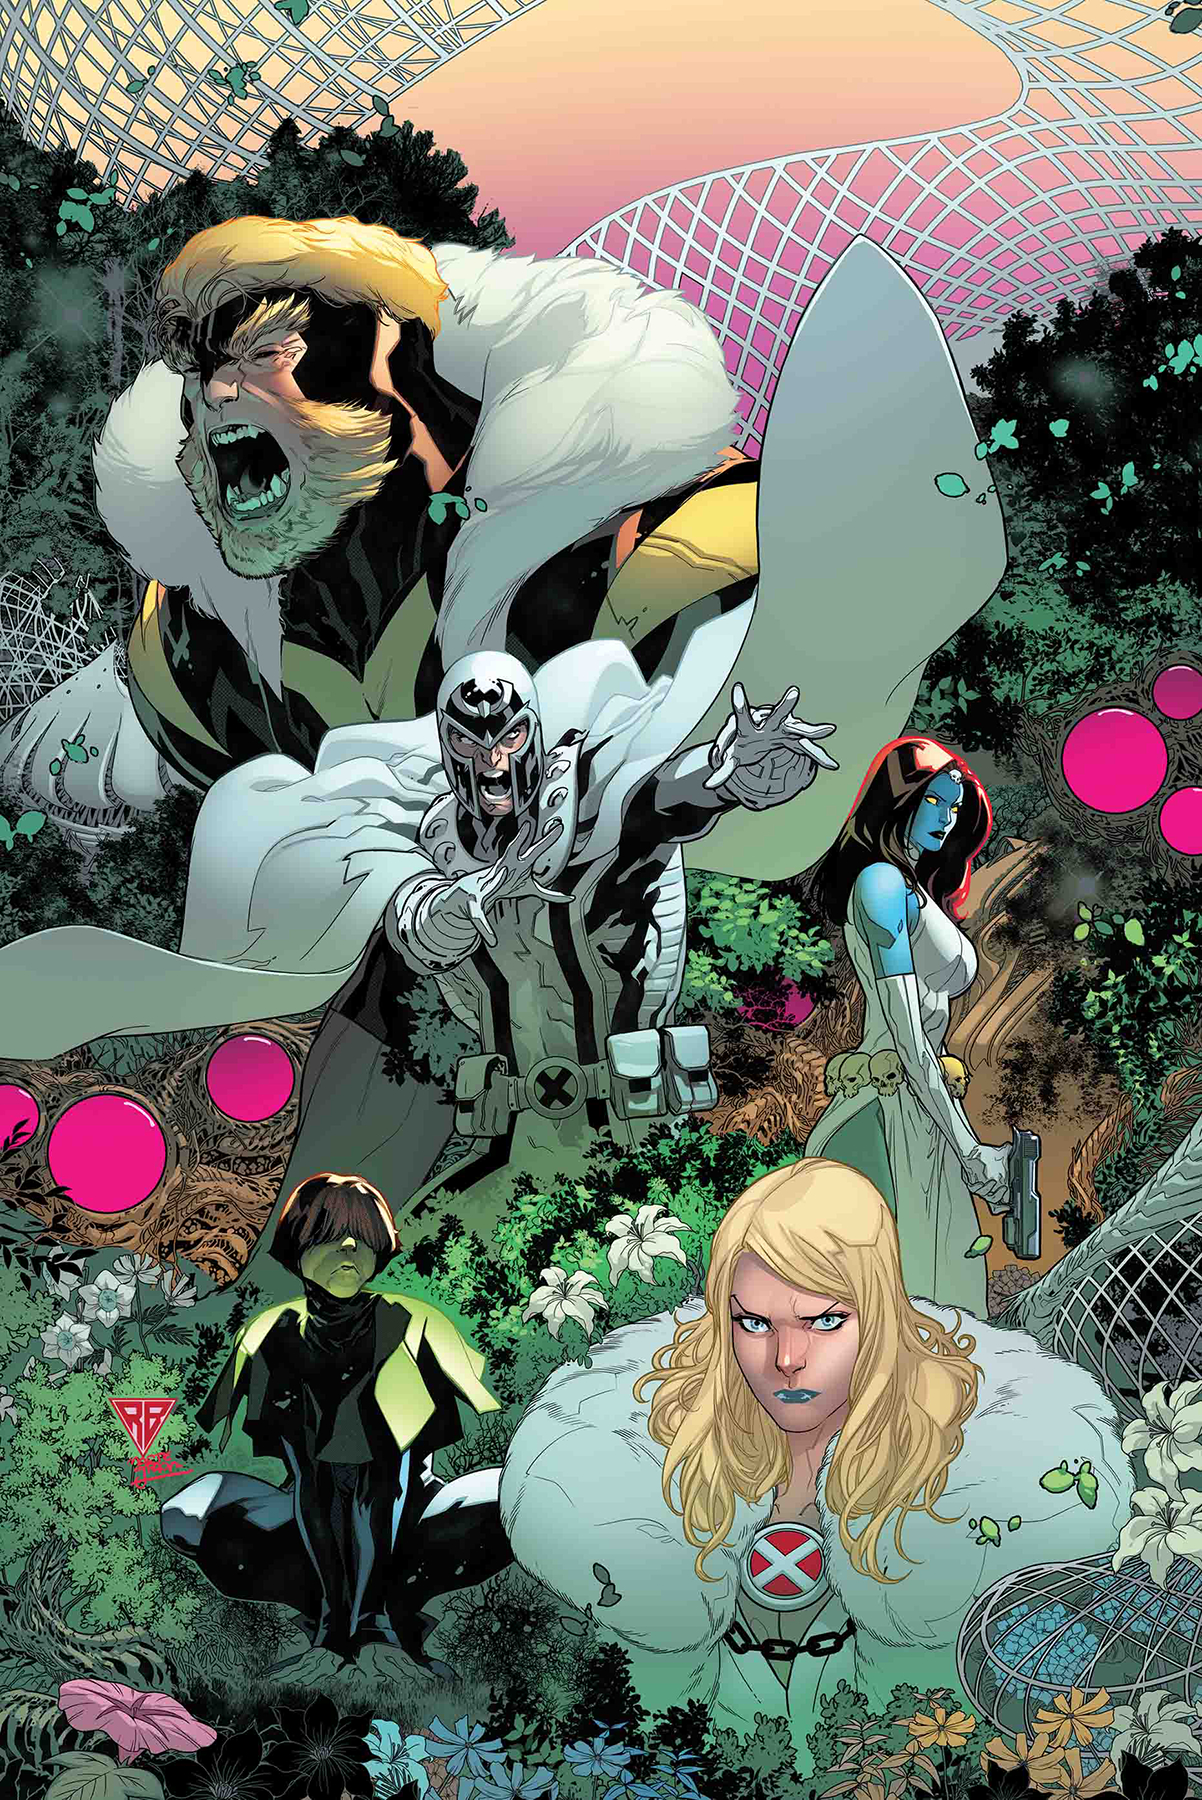 POWERS OF X #2 (OF 6)